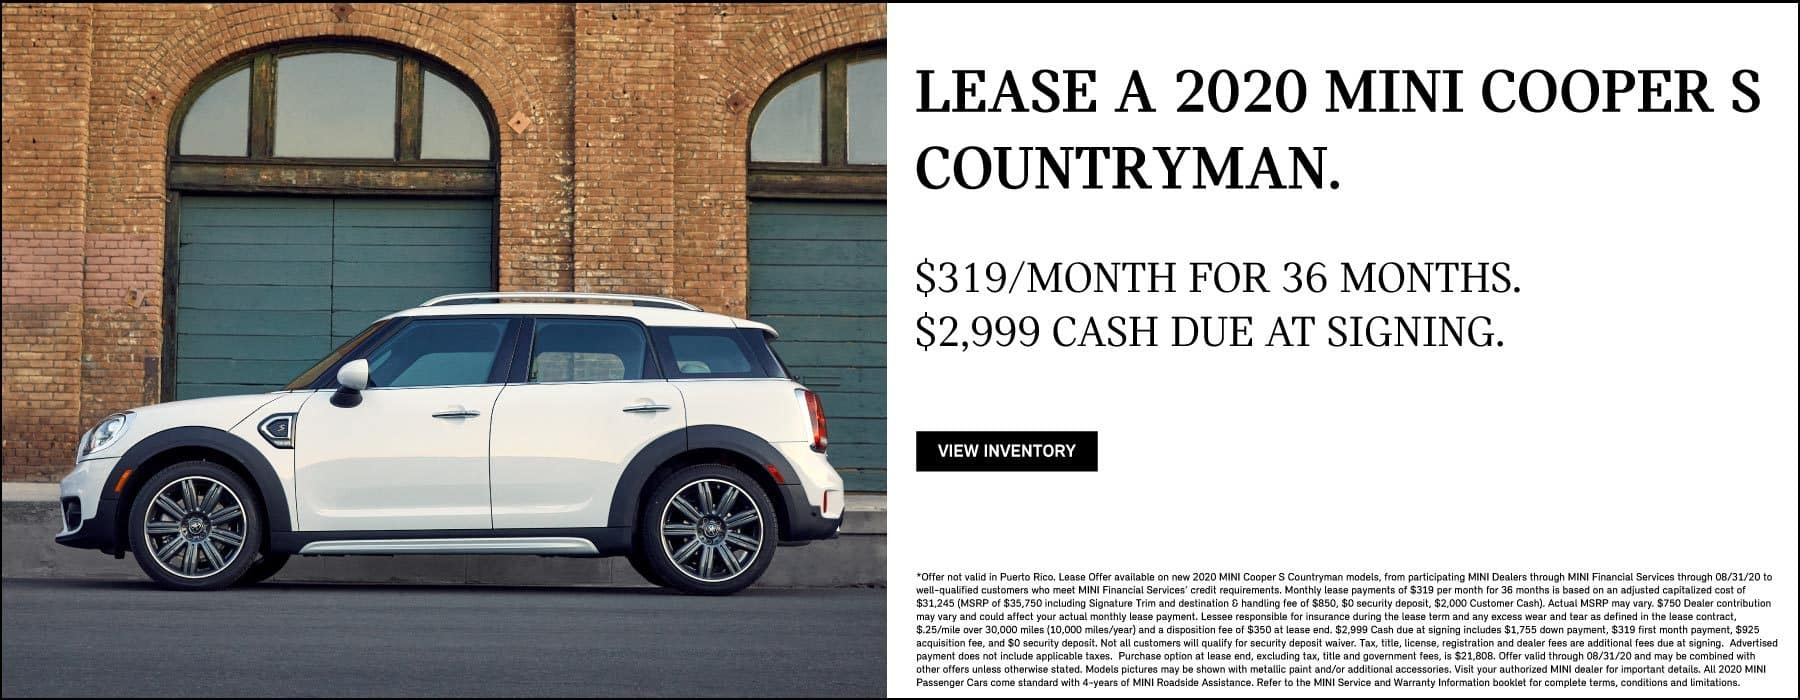 Lease a 2020 MINI Cooper S Countryman for $319/mo.